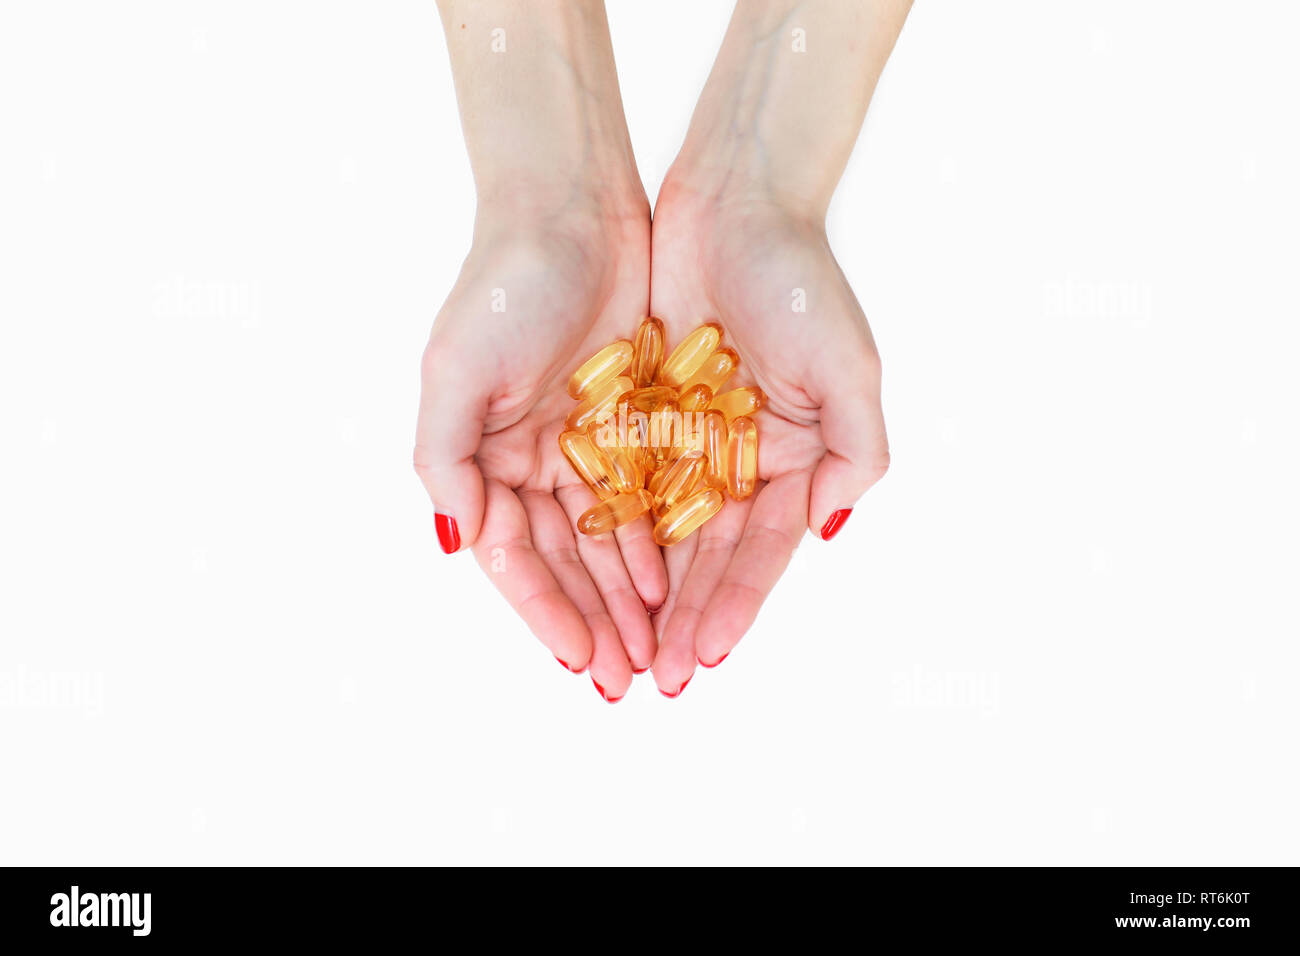 Palm Of Hand Cut Out Stock Images & Pictures - Alamy